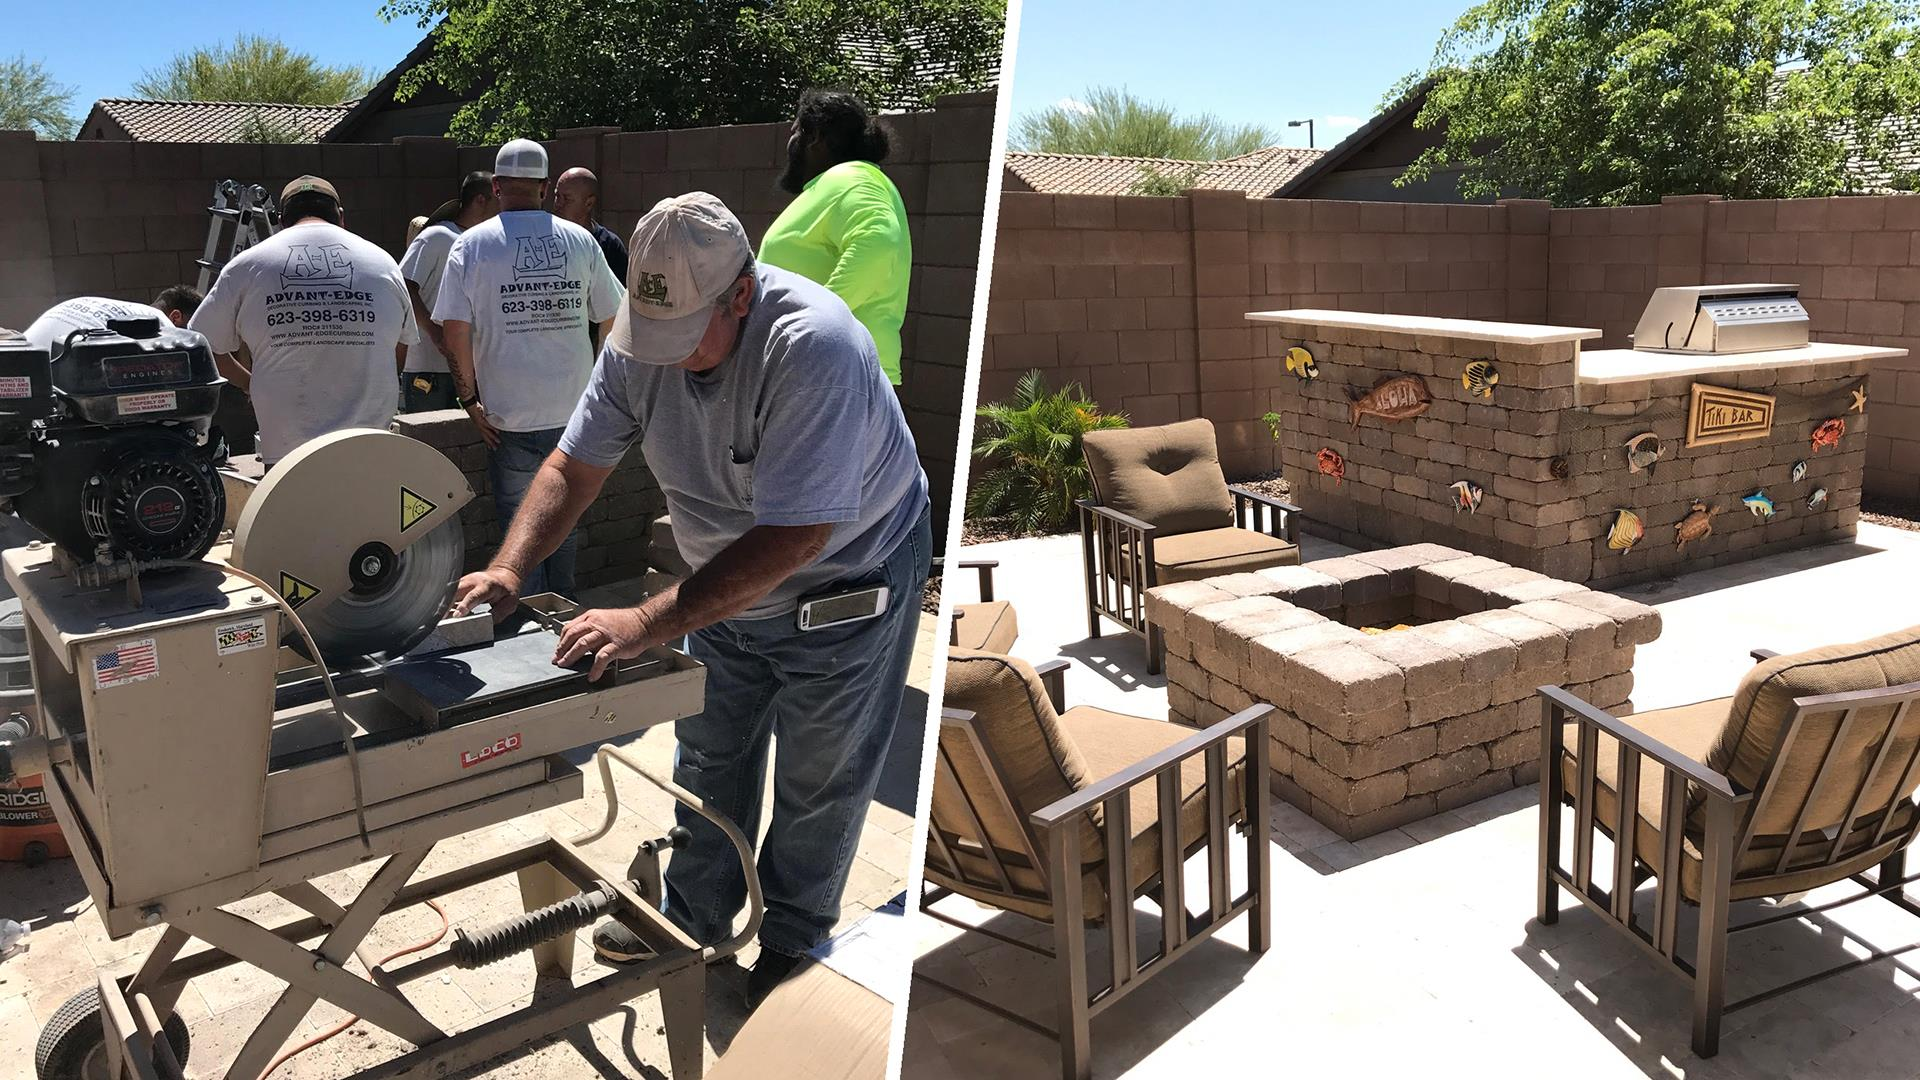 family dealing with cancer gets surprise backyard makeover today com